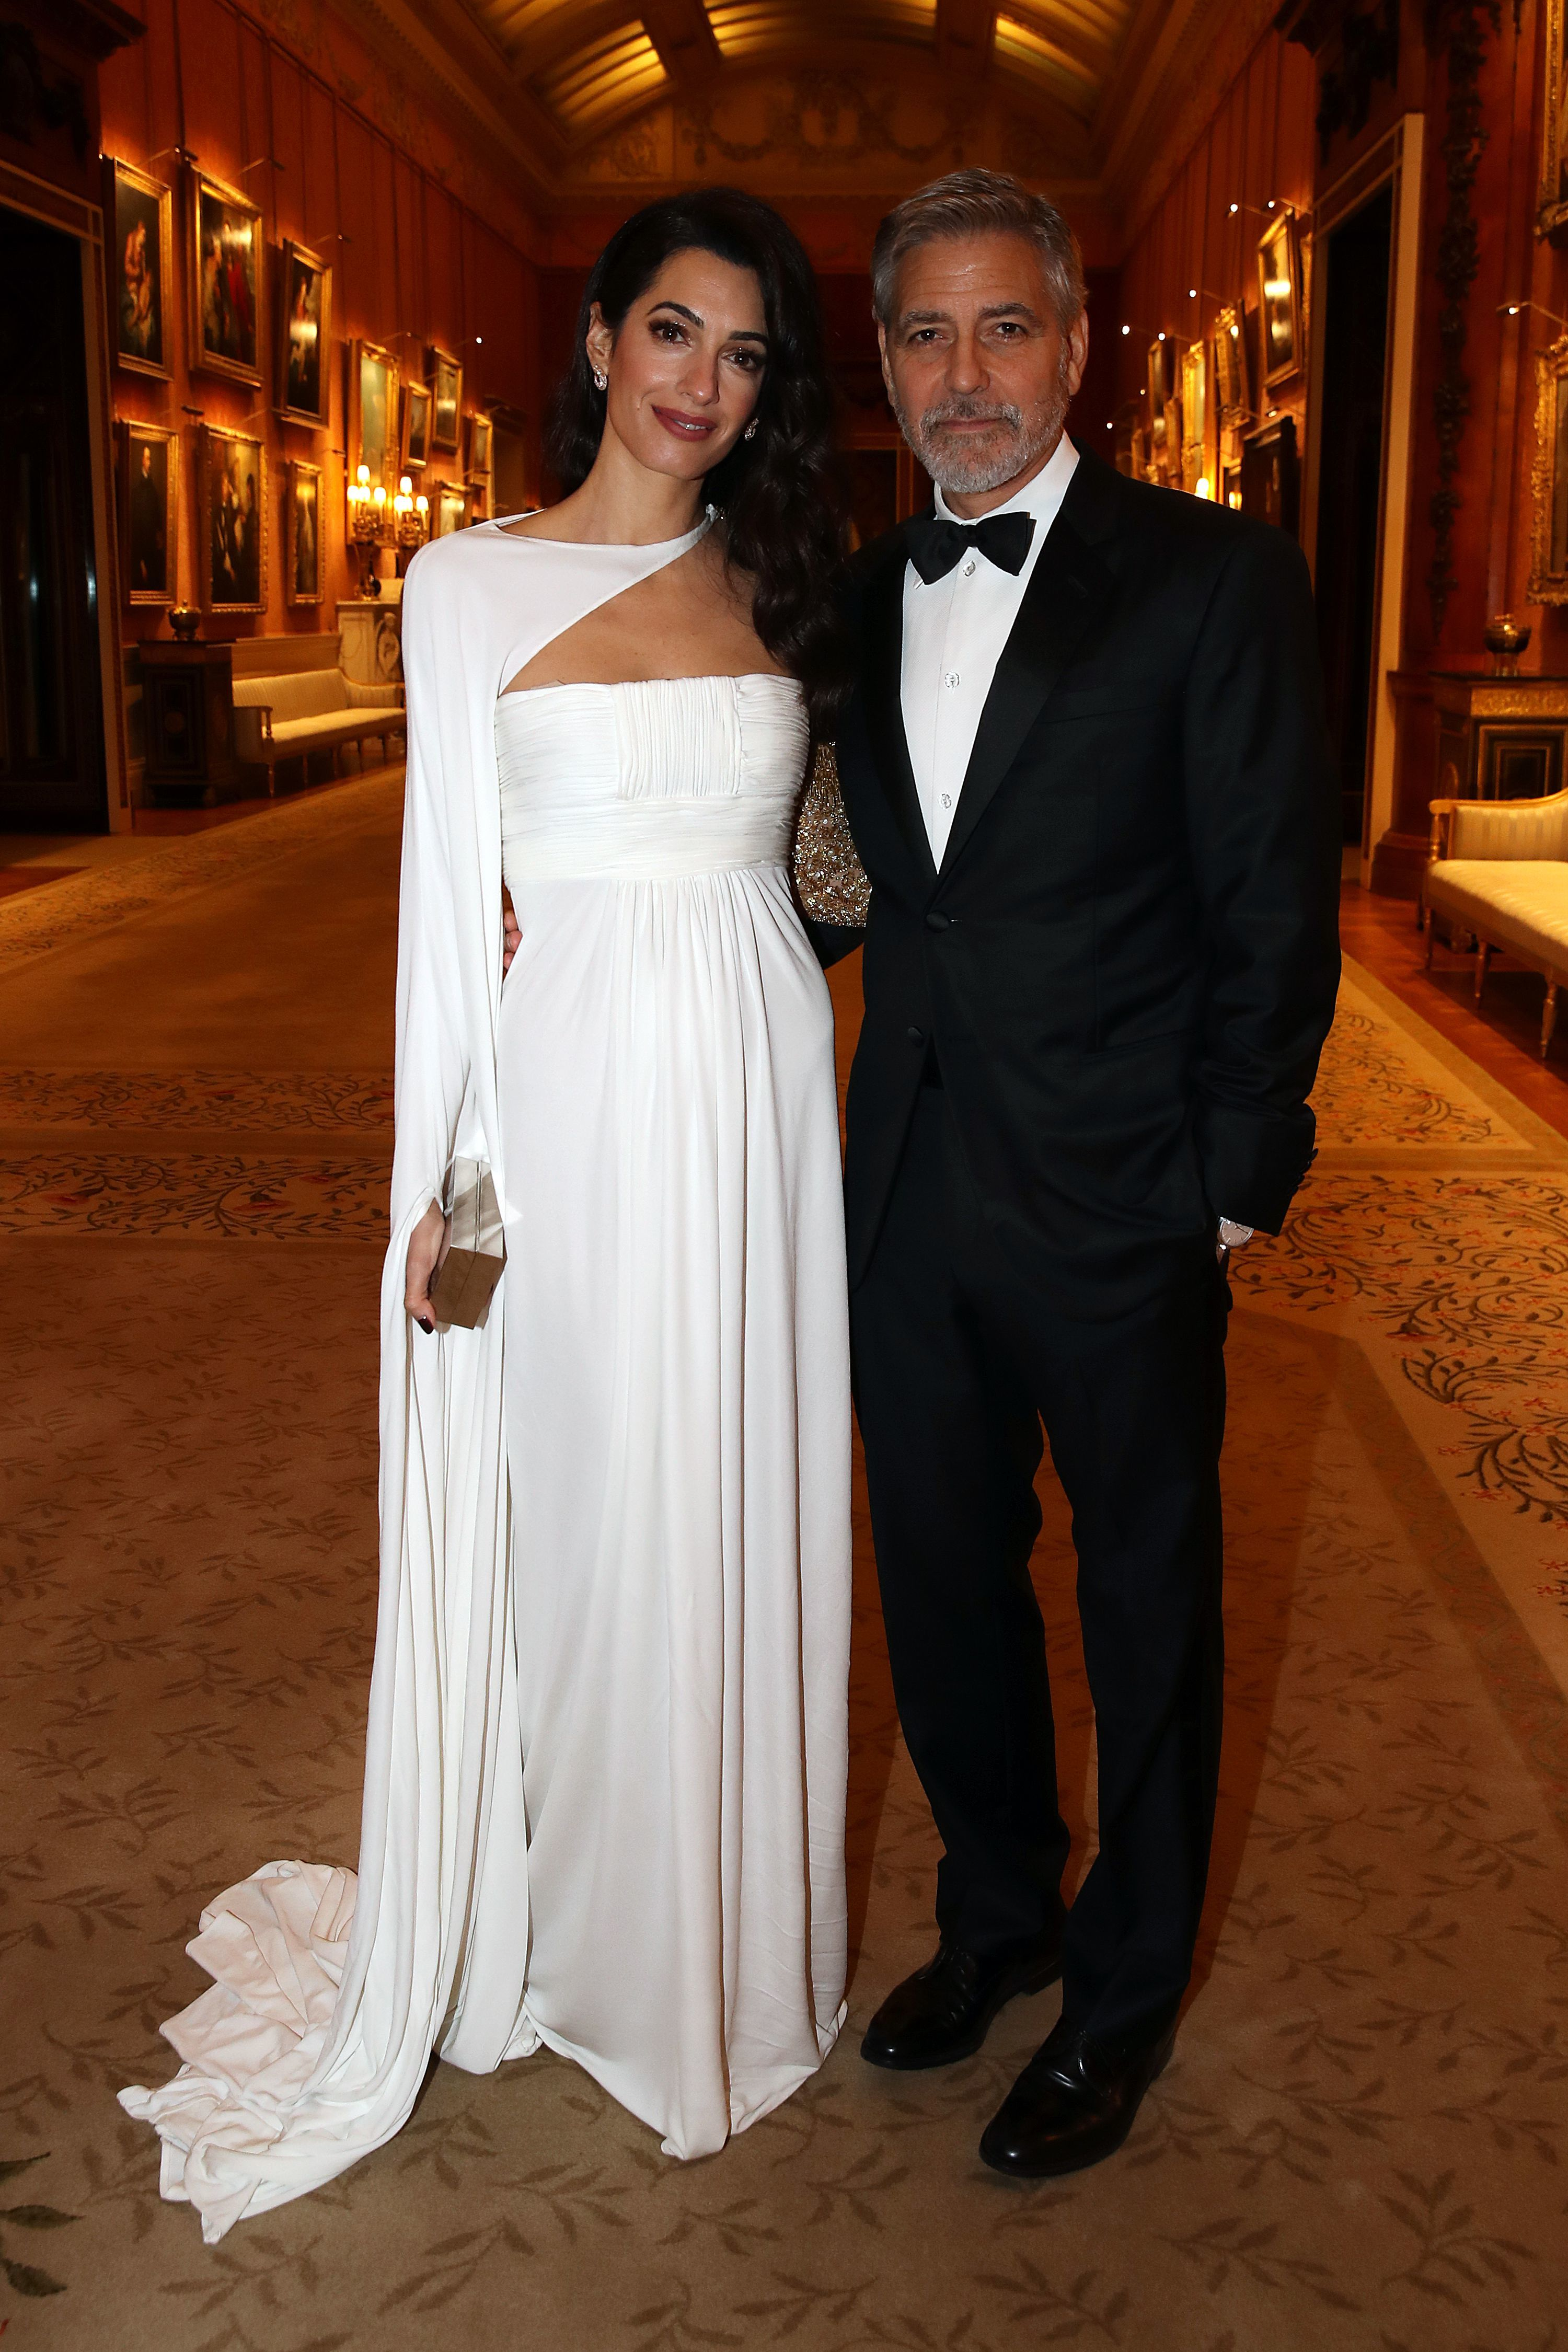 """Amal Clooney and George Clooney attend """"The Prince's Trust"""" Dinner at Buckingham Palace in London on March 12, 2019."""